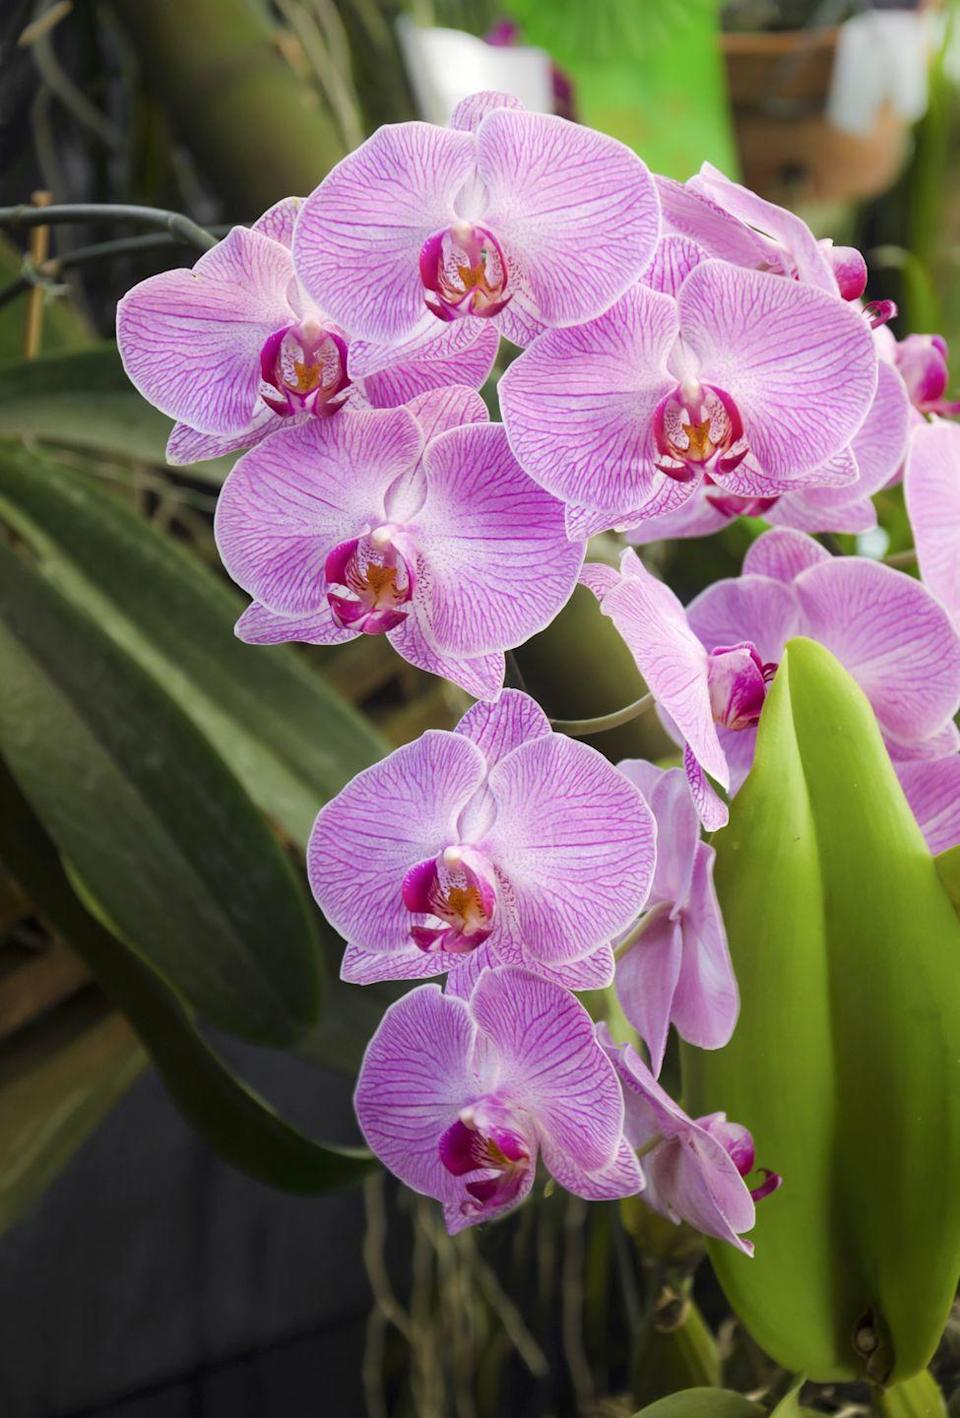 """<p>The final plant to boost your mental health is the classic, much-loved orchid. In addition to improving your mood, orchids can help you to relax and feel less stressed. </p><p><a class=""""link rapid-noclick-resp"""" href=""""https://www.serenataflowers.com/en/uk/plants/next-day-delivery/product/110473"""" rel=""""nofollow noopener"""" target=""""_blank"""" data-ylk=""""slk:BUY NOW VIA SERENATA FLOWERS"""">BUY NOW VIA SERENATA FLOWERS</a> </p><p><strong>Follow House Beautiful on <a href=""""https://www.instagram.com/housebeautifuluk/"""" rel=""""nofollow noopener"""" target=""""_blank"""" data-ylk=""""slk:Instagram"""" class=""""link rapid-noclick-resp"""">Instagram</a>.</strong></p>"""